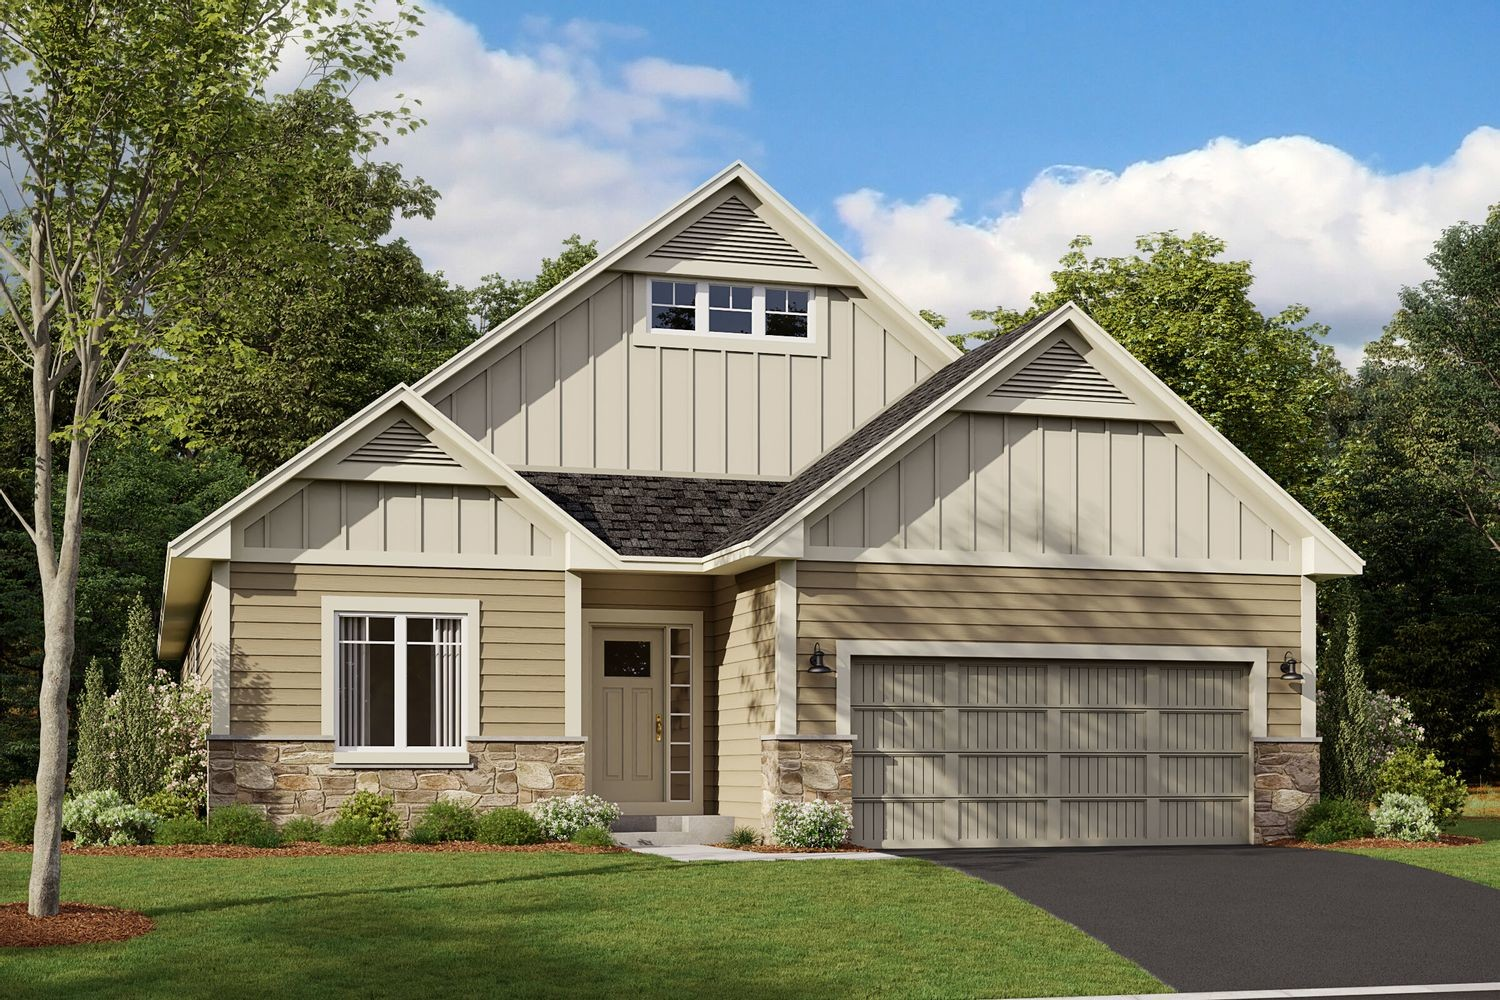 Move In Ready New Home In Woodland Cove Community